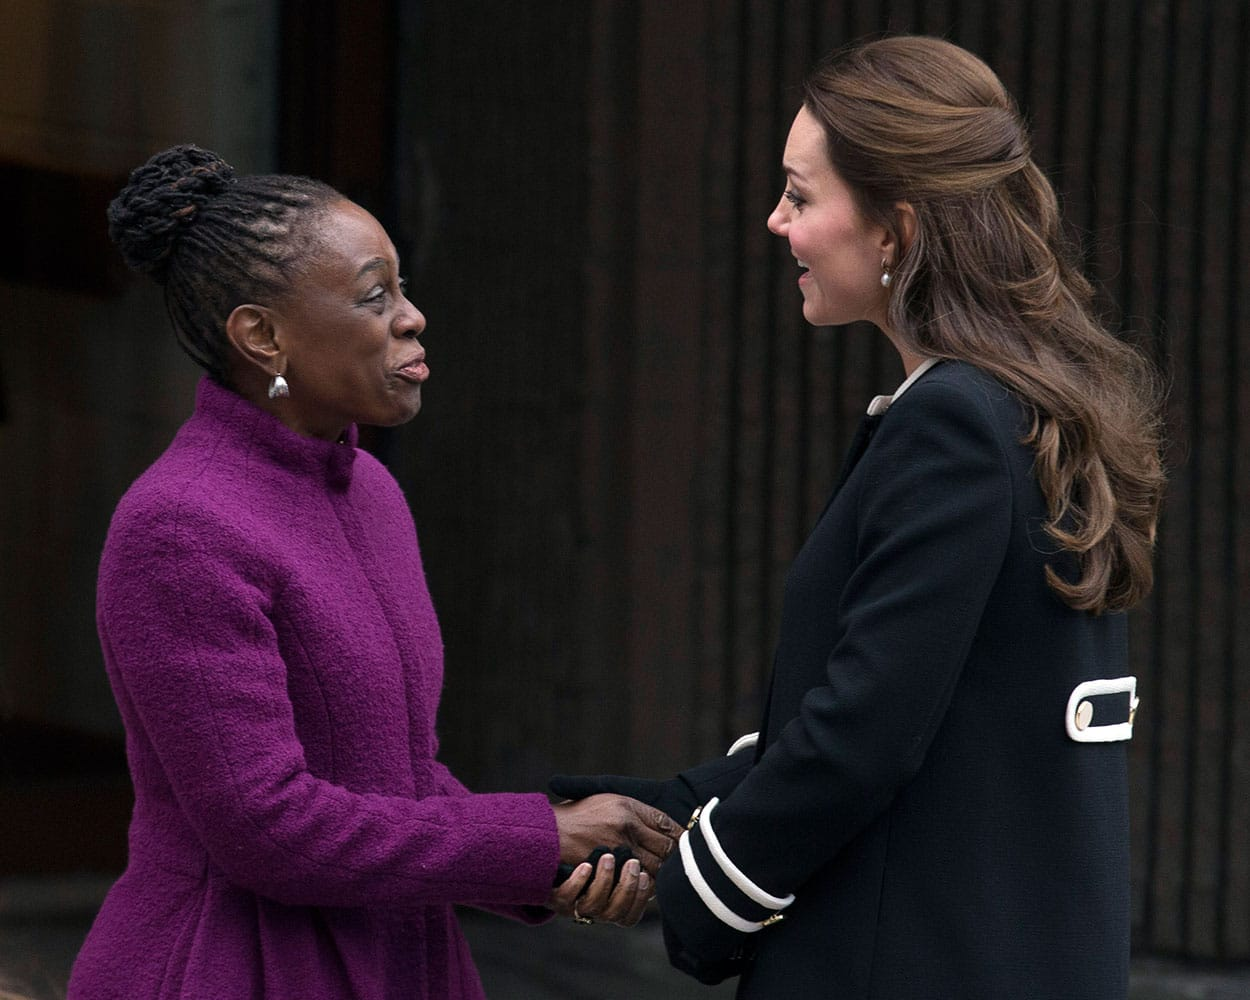 New York City first lady Chirlane McCray, left, and Britain's Kate, Duchess of Cambridge, shake hands outside the Northside Center for Child Development, Monday, Dec. 8, 2014, in New York.